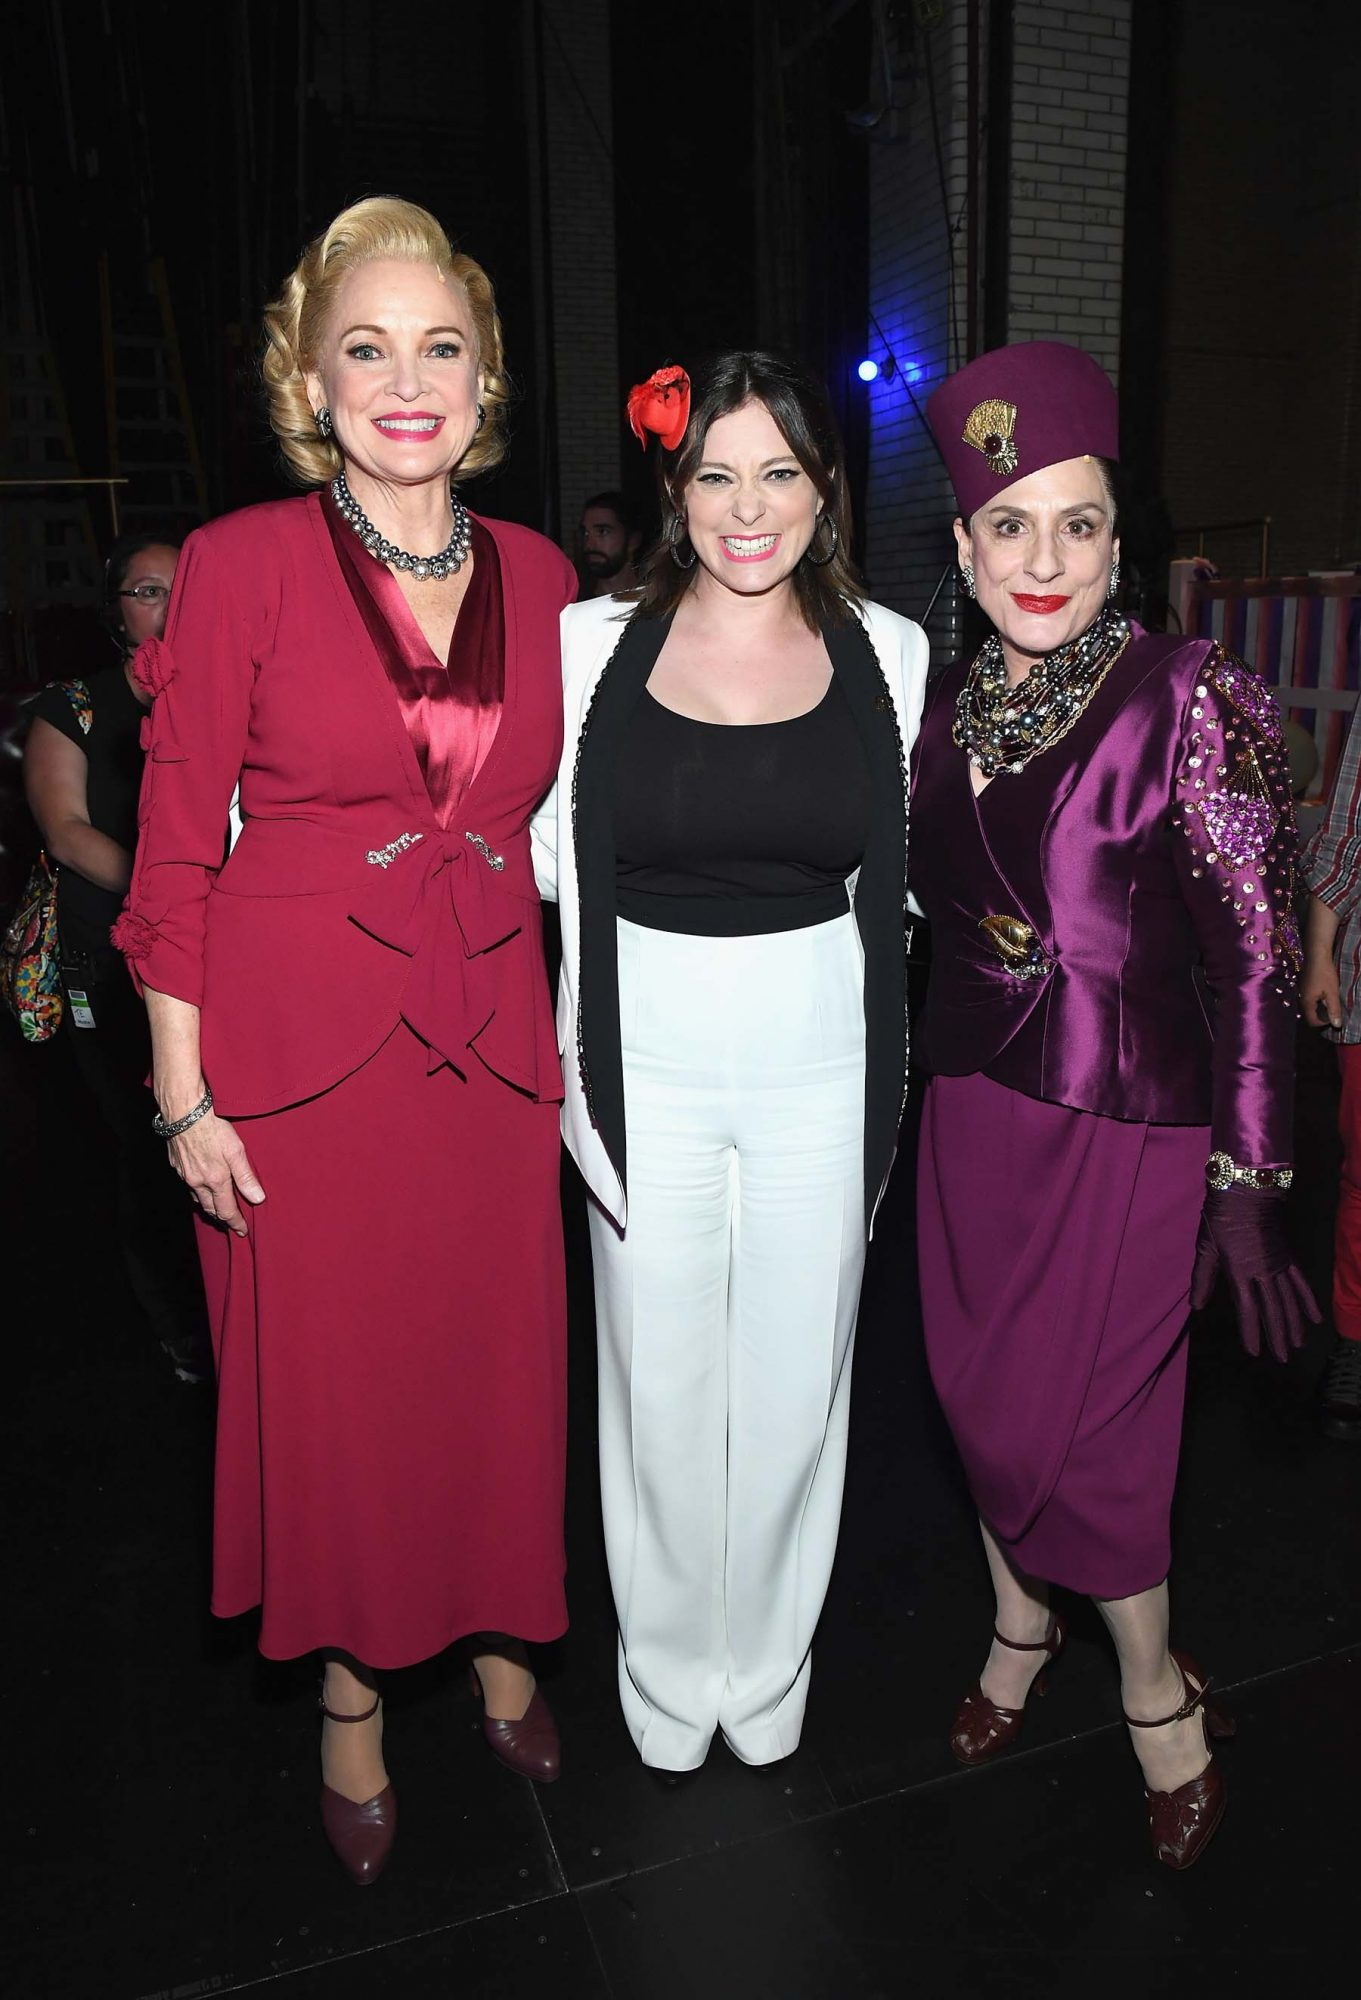 With Christine Ebersole and Patti LuPone